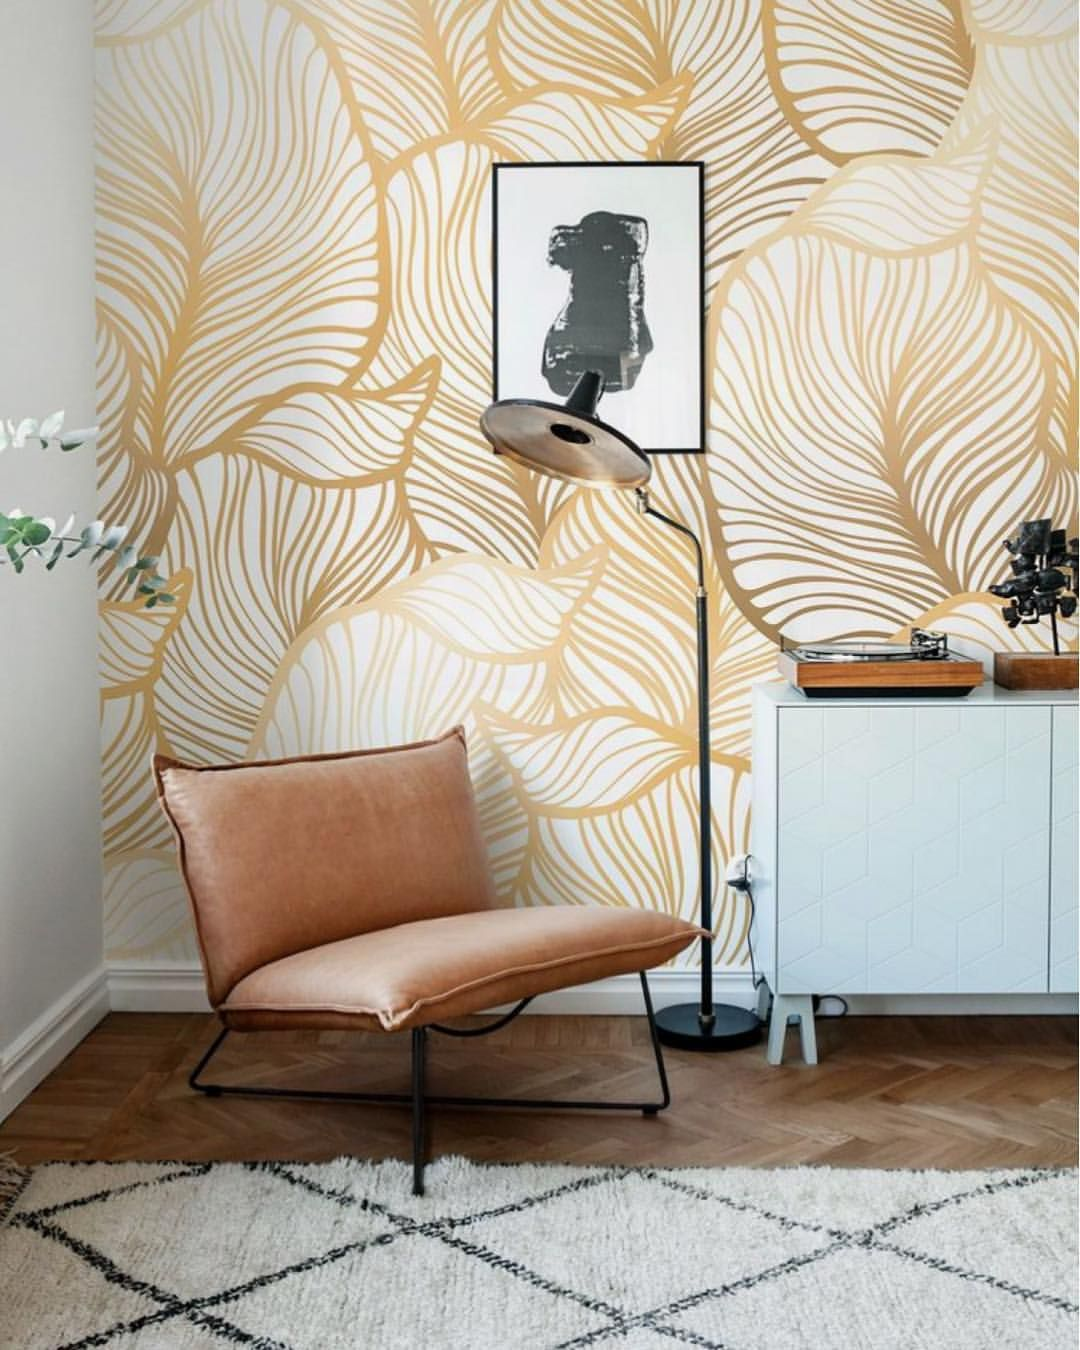 What A Beauty Of A Wallpaper Glitzy And Glam But Also Light And Airy Definitely A Winner So If Anyone Can Let Us Know Home Decor Home Decor Decals Wallpaper